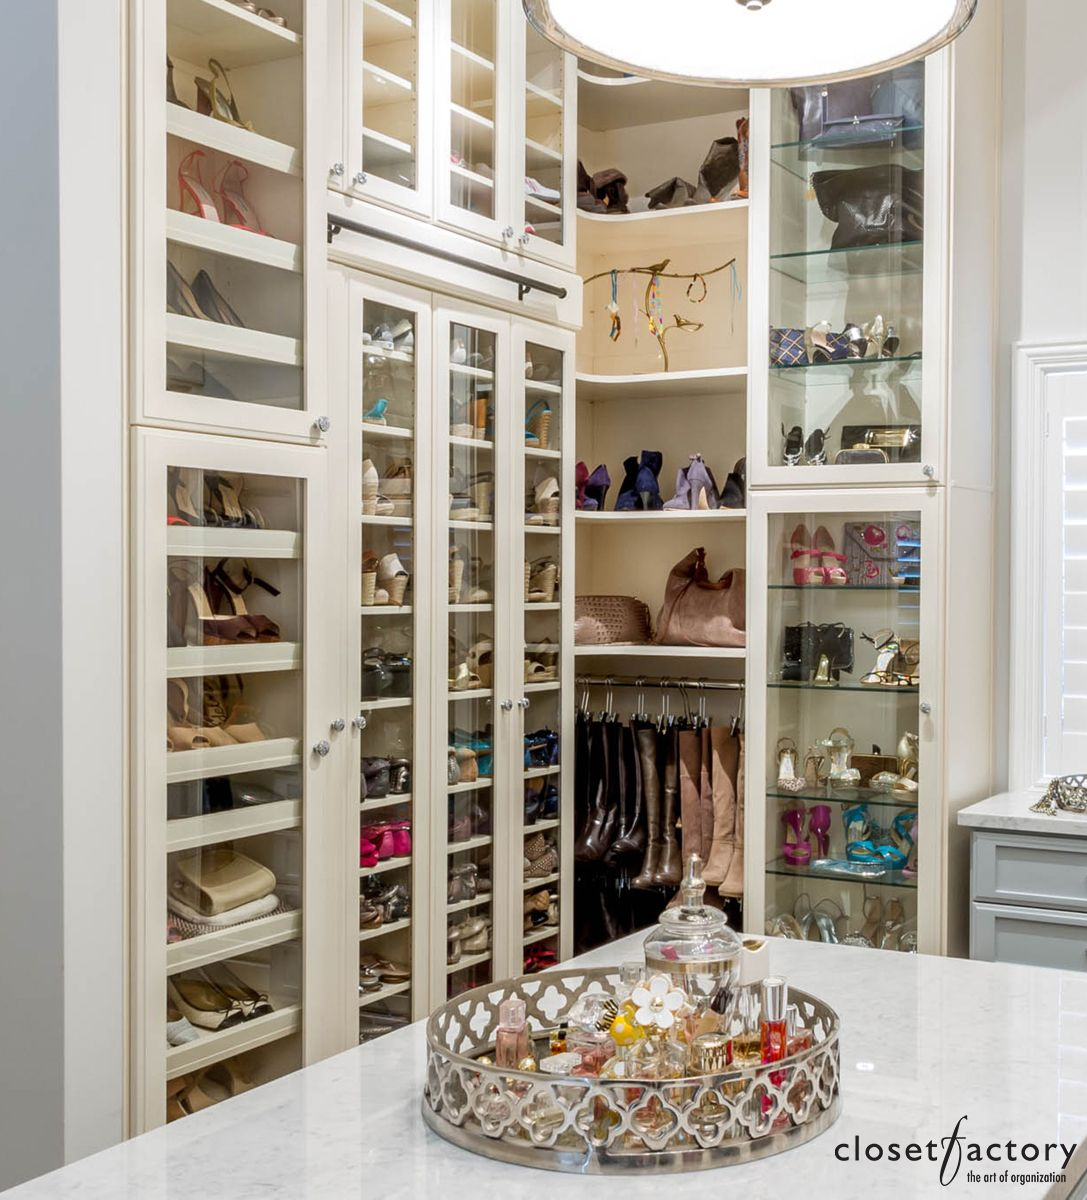 Charmant Closet Factory Specializes In The Design And Installation Of Custom  Closets, Offices, Cabinetry, And More. FREE Consultations Throughout The  Houston Area!